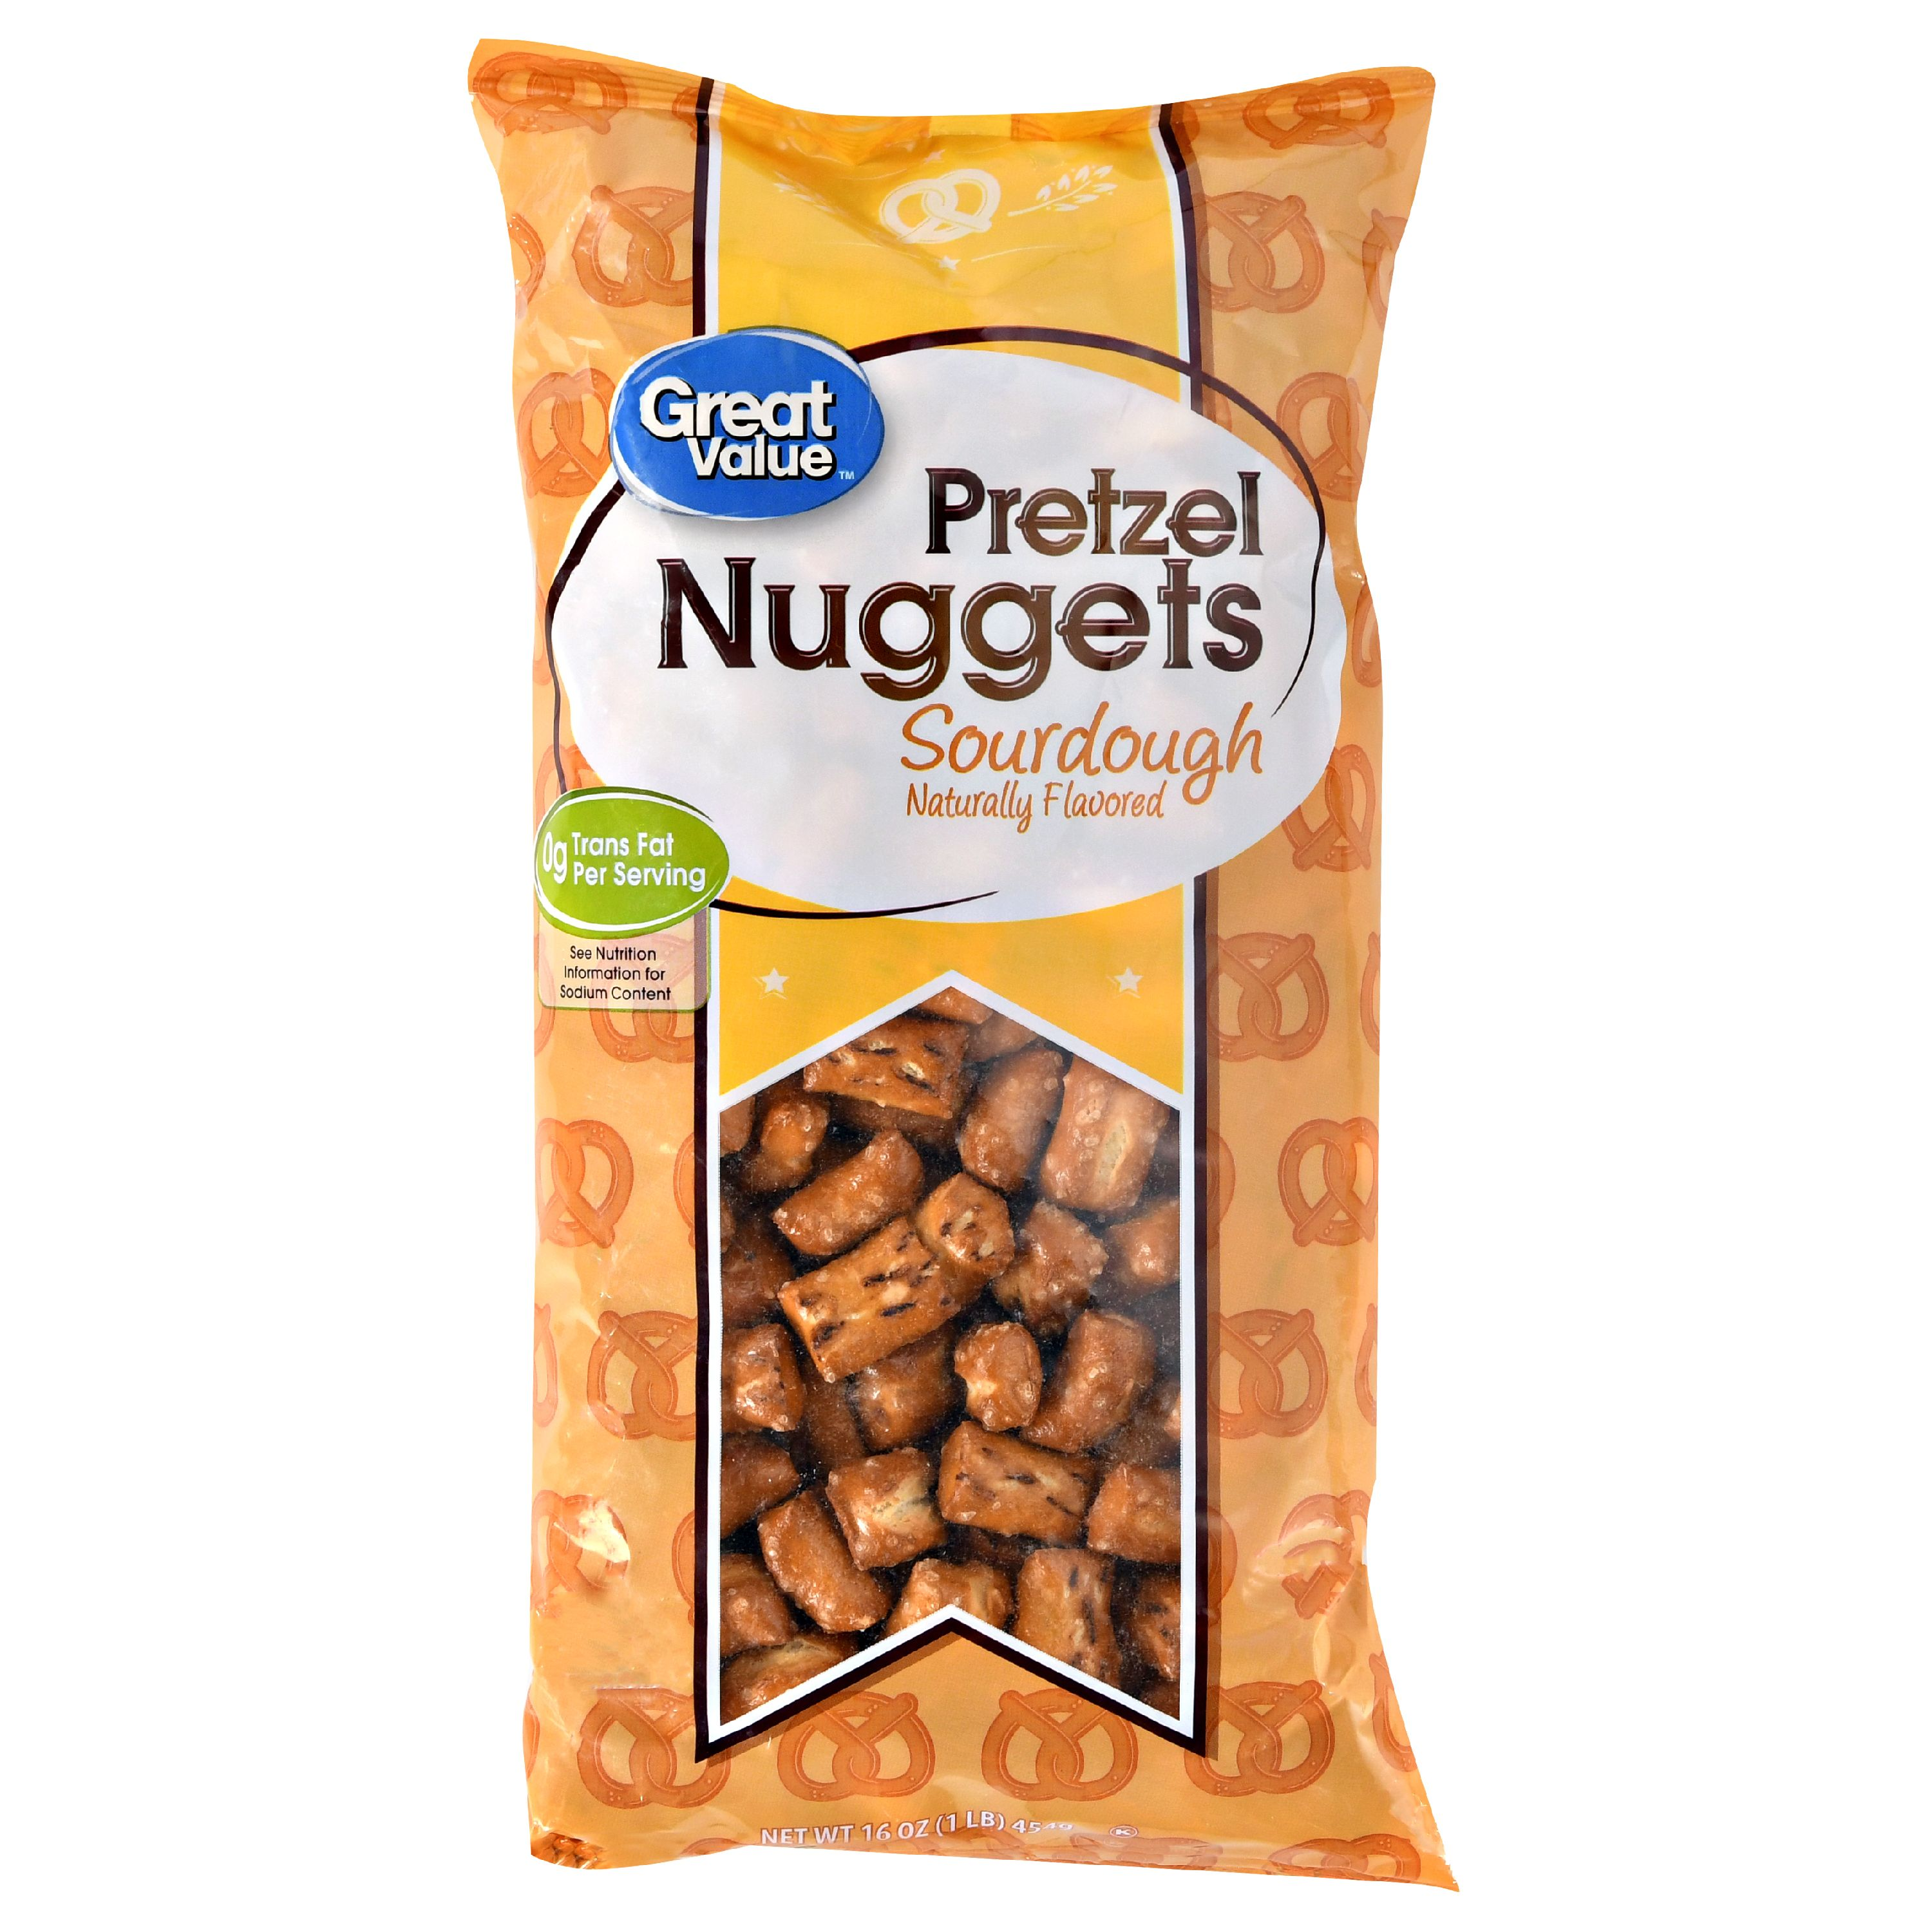 Nuggets The Great: Great Nuggets Pretzel Value Sourdough 16 Oz